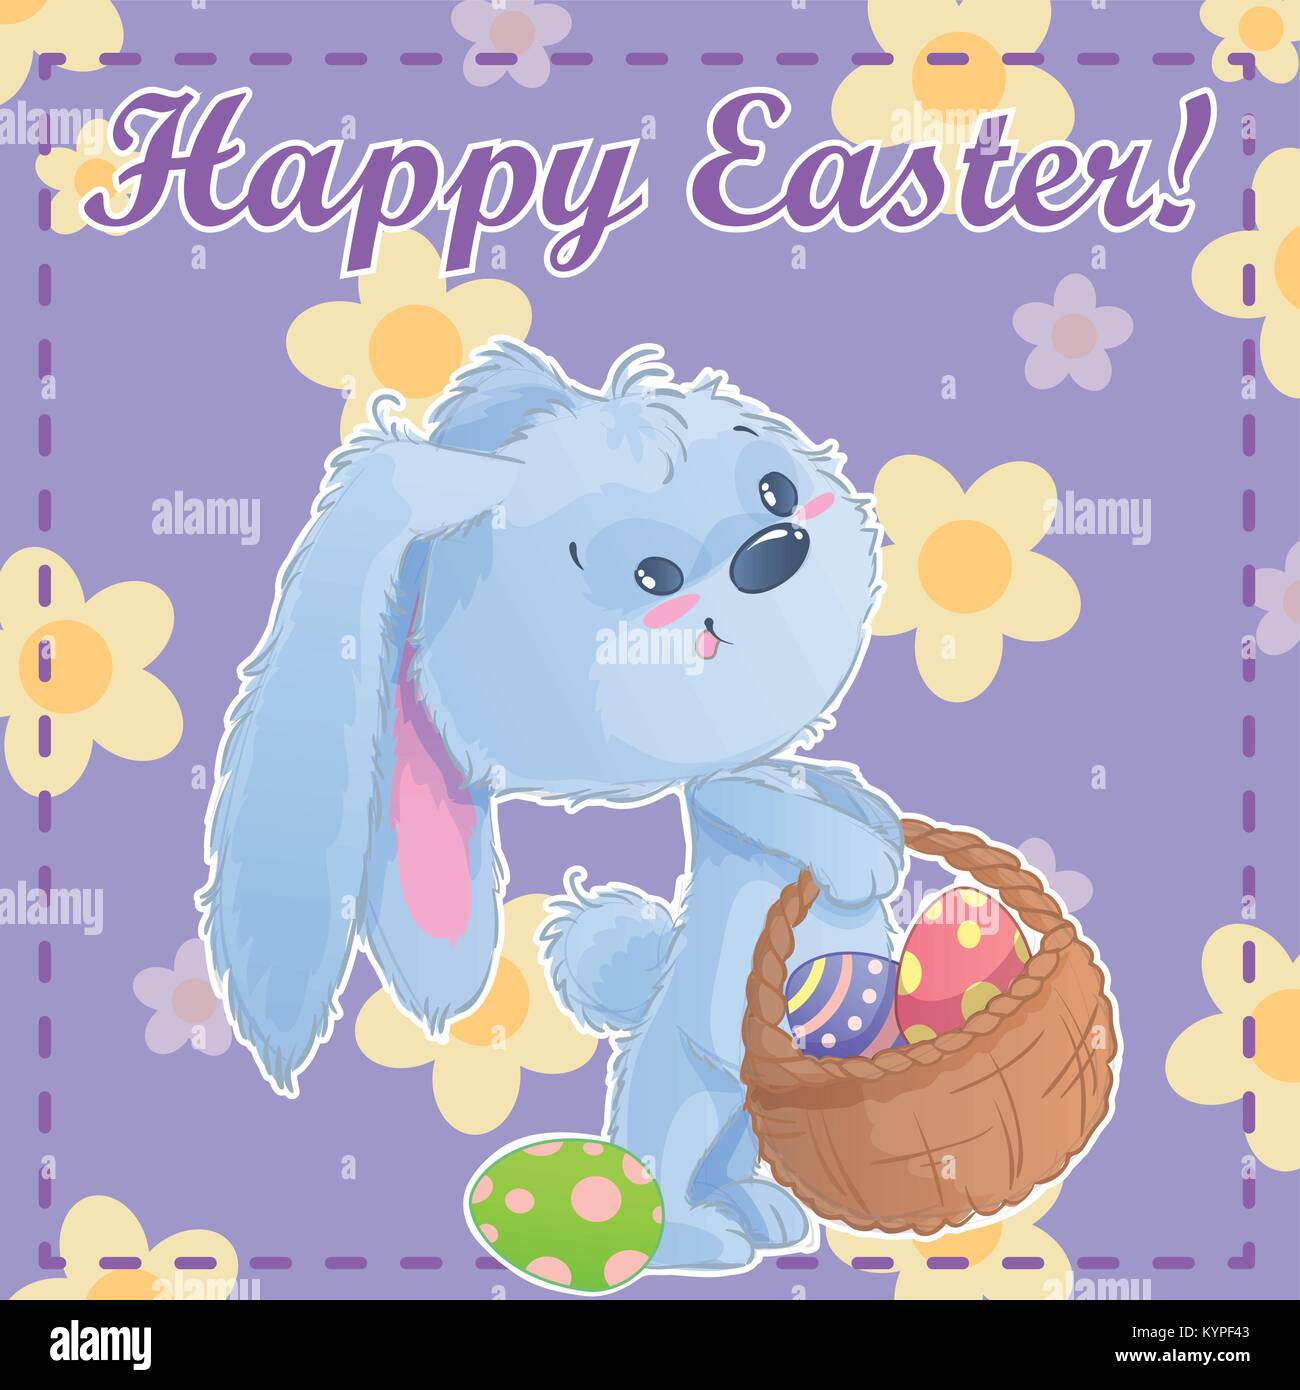 picture about Happy Easter Cards Printable named Greeting write-up card printable template Satisfied Easter with lovable